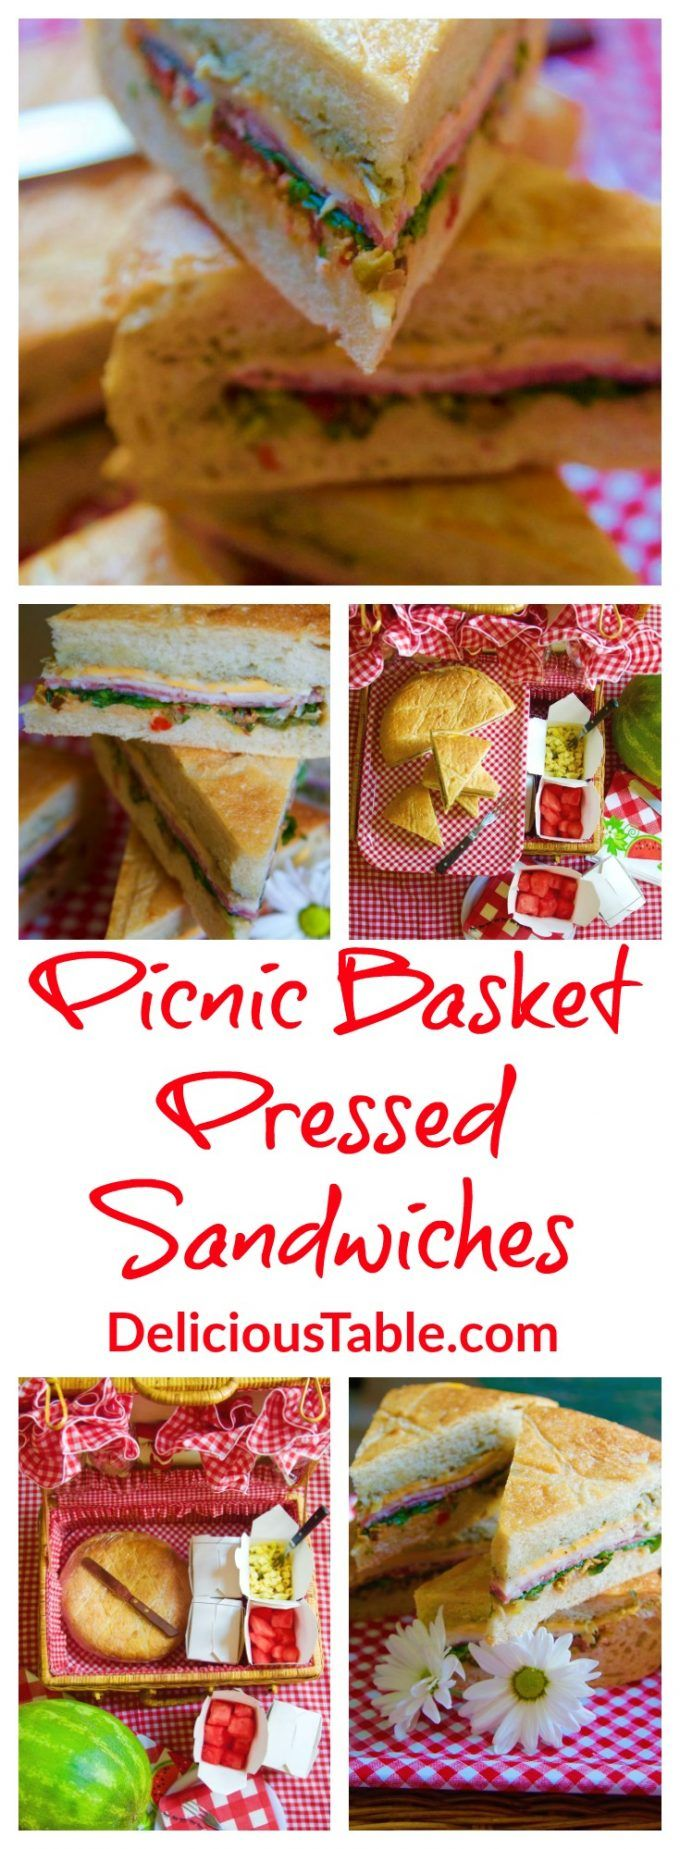 Yummy Picnic Basket Pressed Sandwiches are both neat to eat, and easy to make! Made in minutes, can be made ahead, and store well overnight in the fridge.